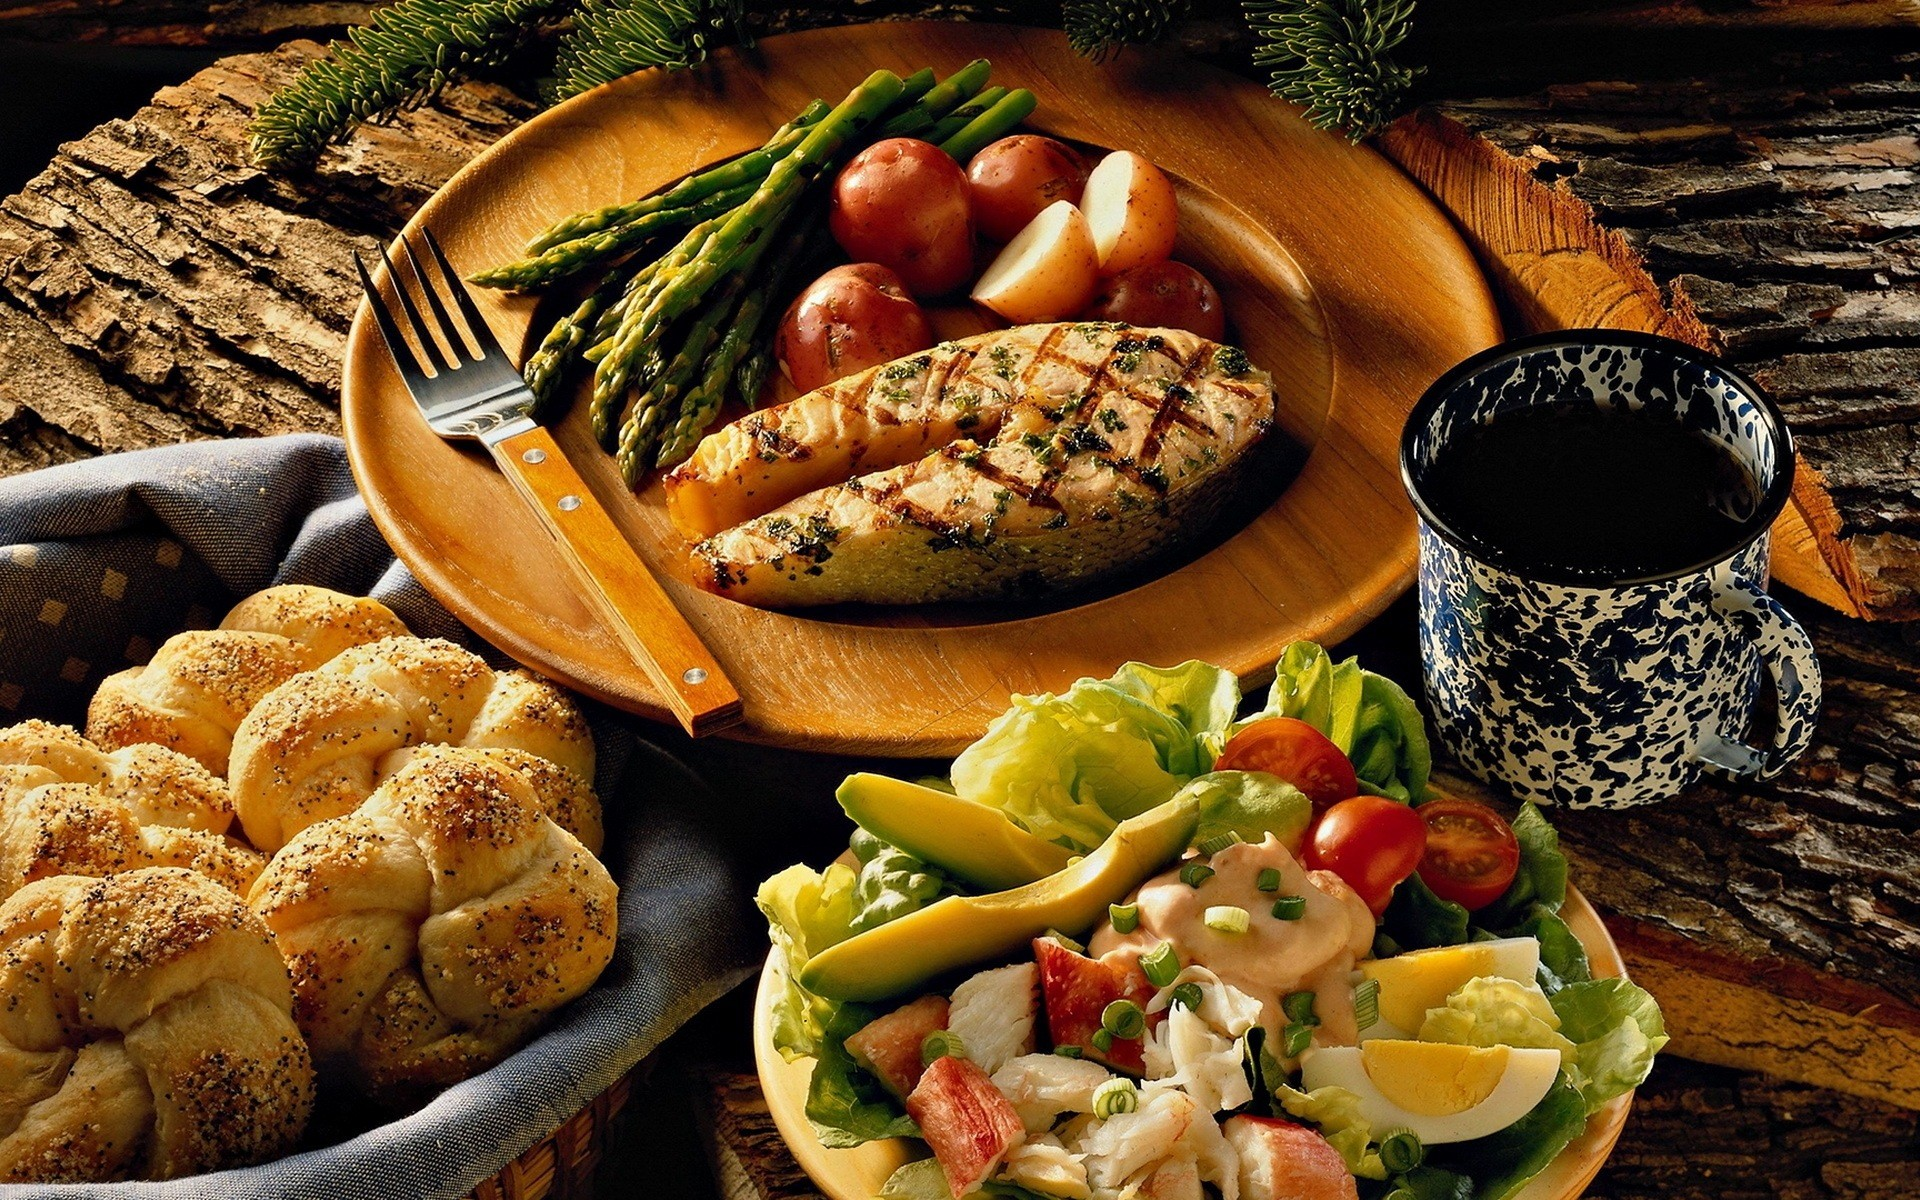 Making Healthy Meals Choices